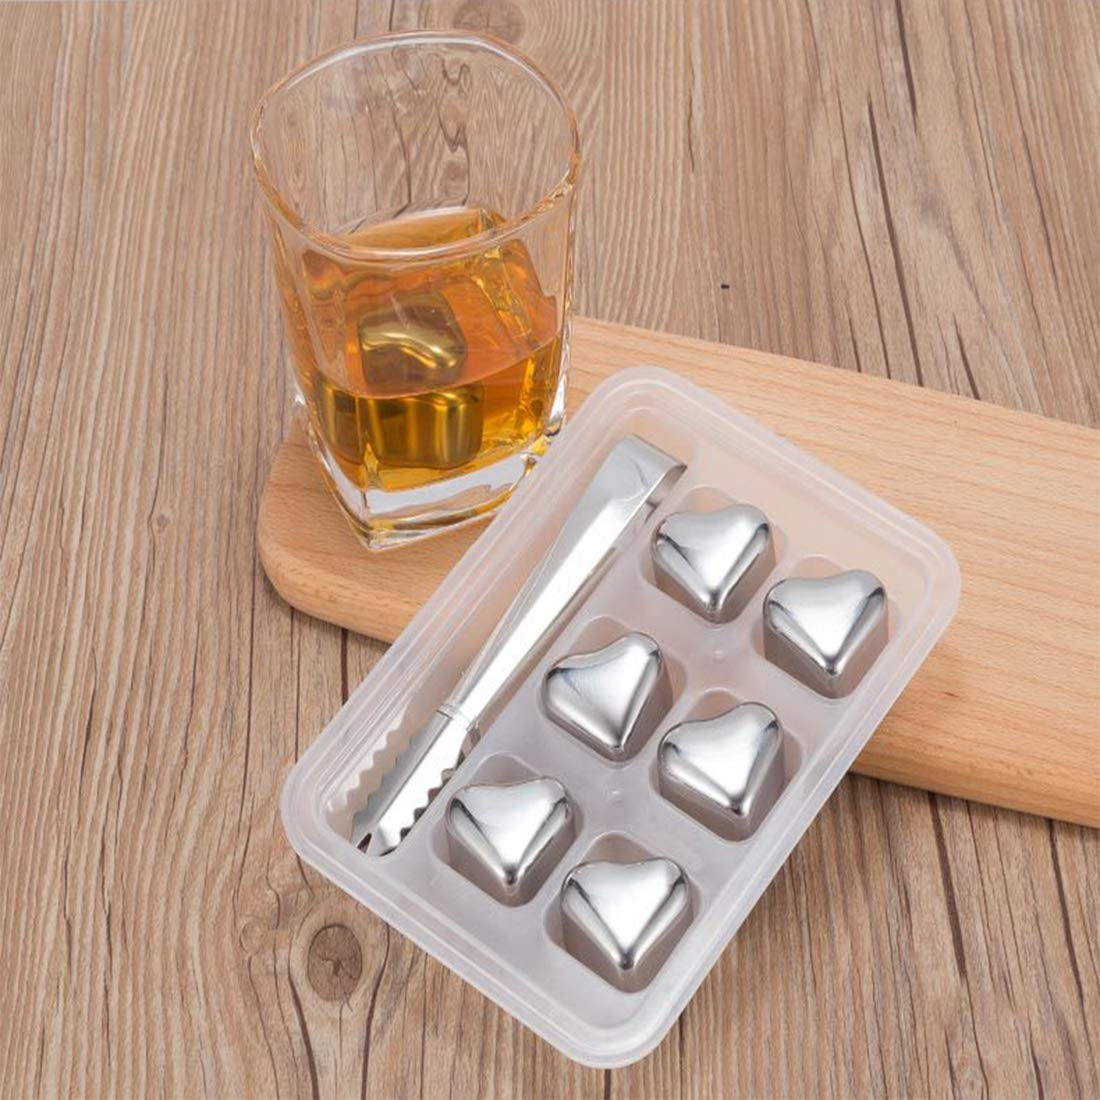 SONGYANG Ice Cube Reusable Stainless Steel Ice Cubes Set Drinks Stones with Tongs for Cooking Whiskey, Vodka, Wine, Beer, Beverage,All Drinks(Heart),6pcs by SONGYANG